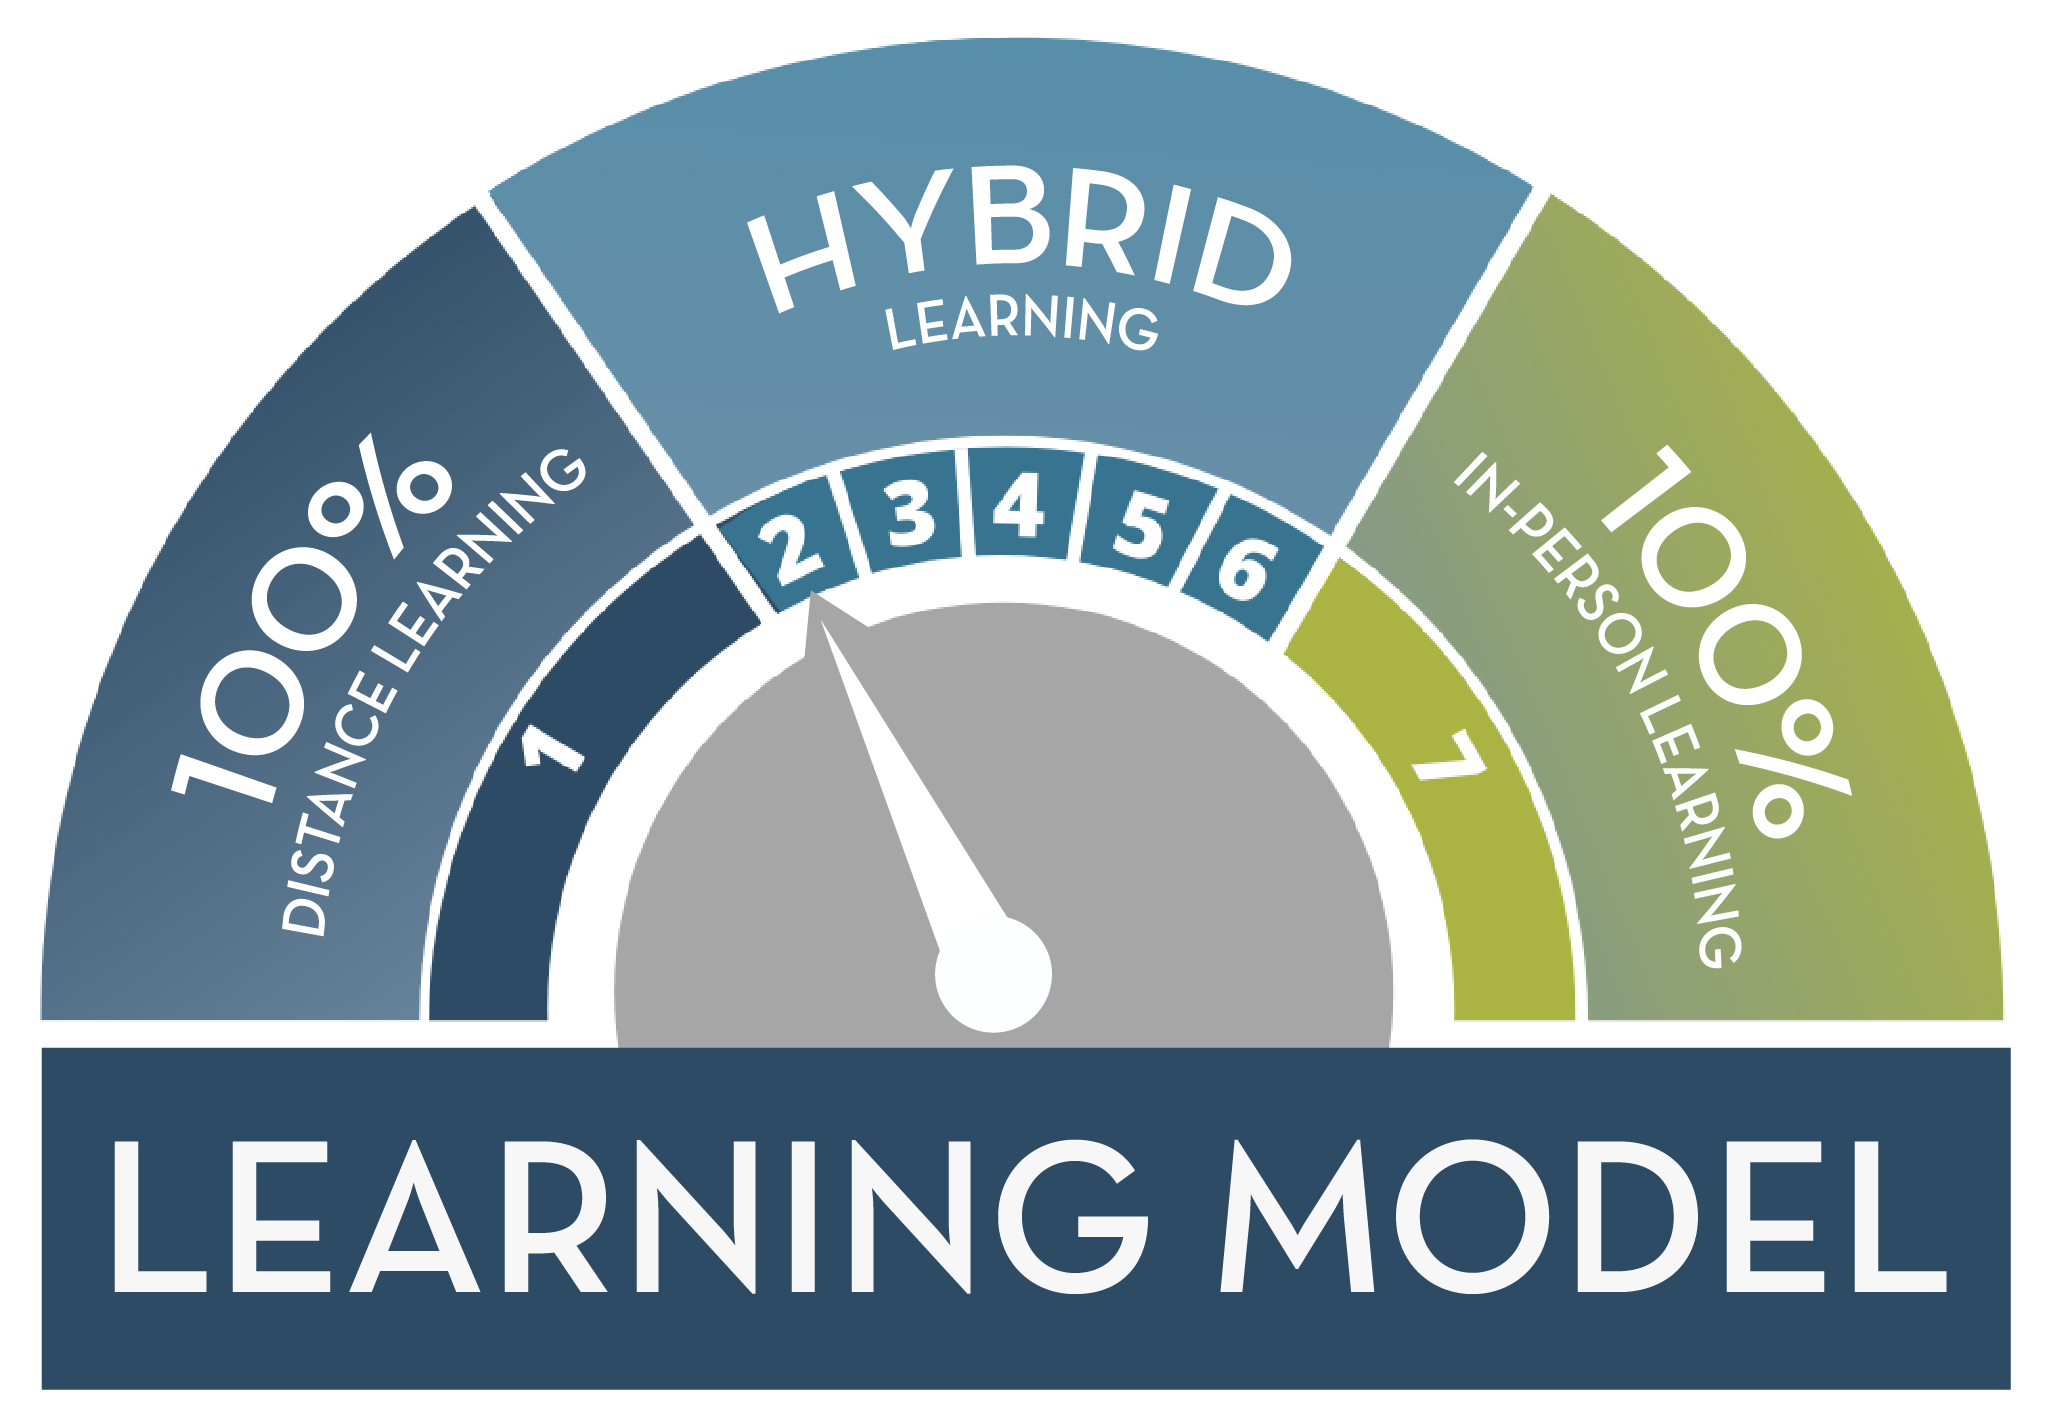 Stage 2 - Hybrid Learning